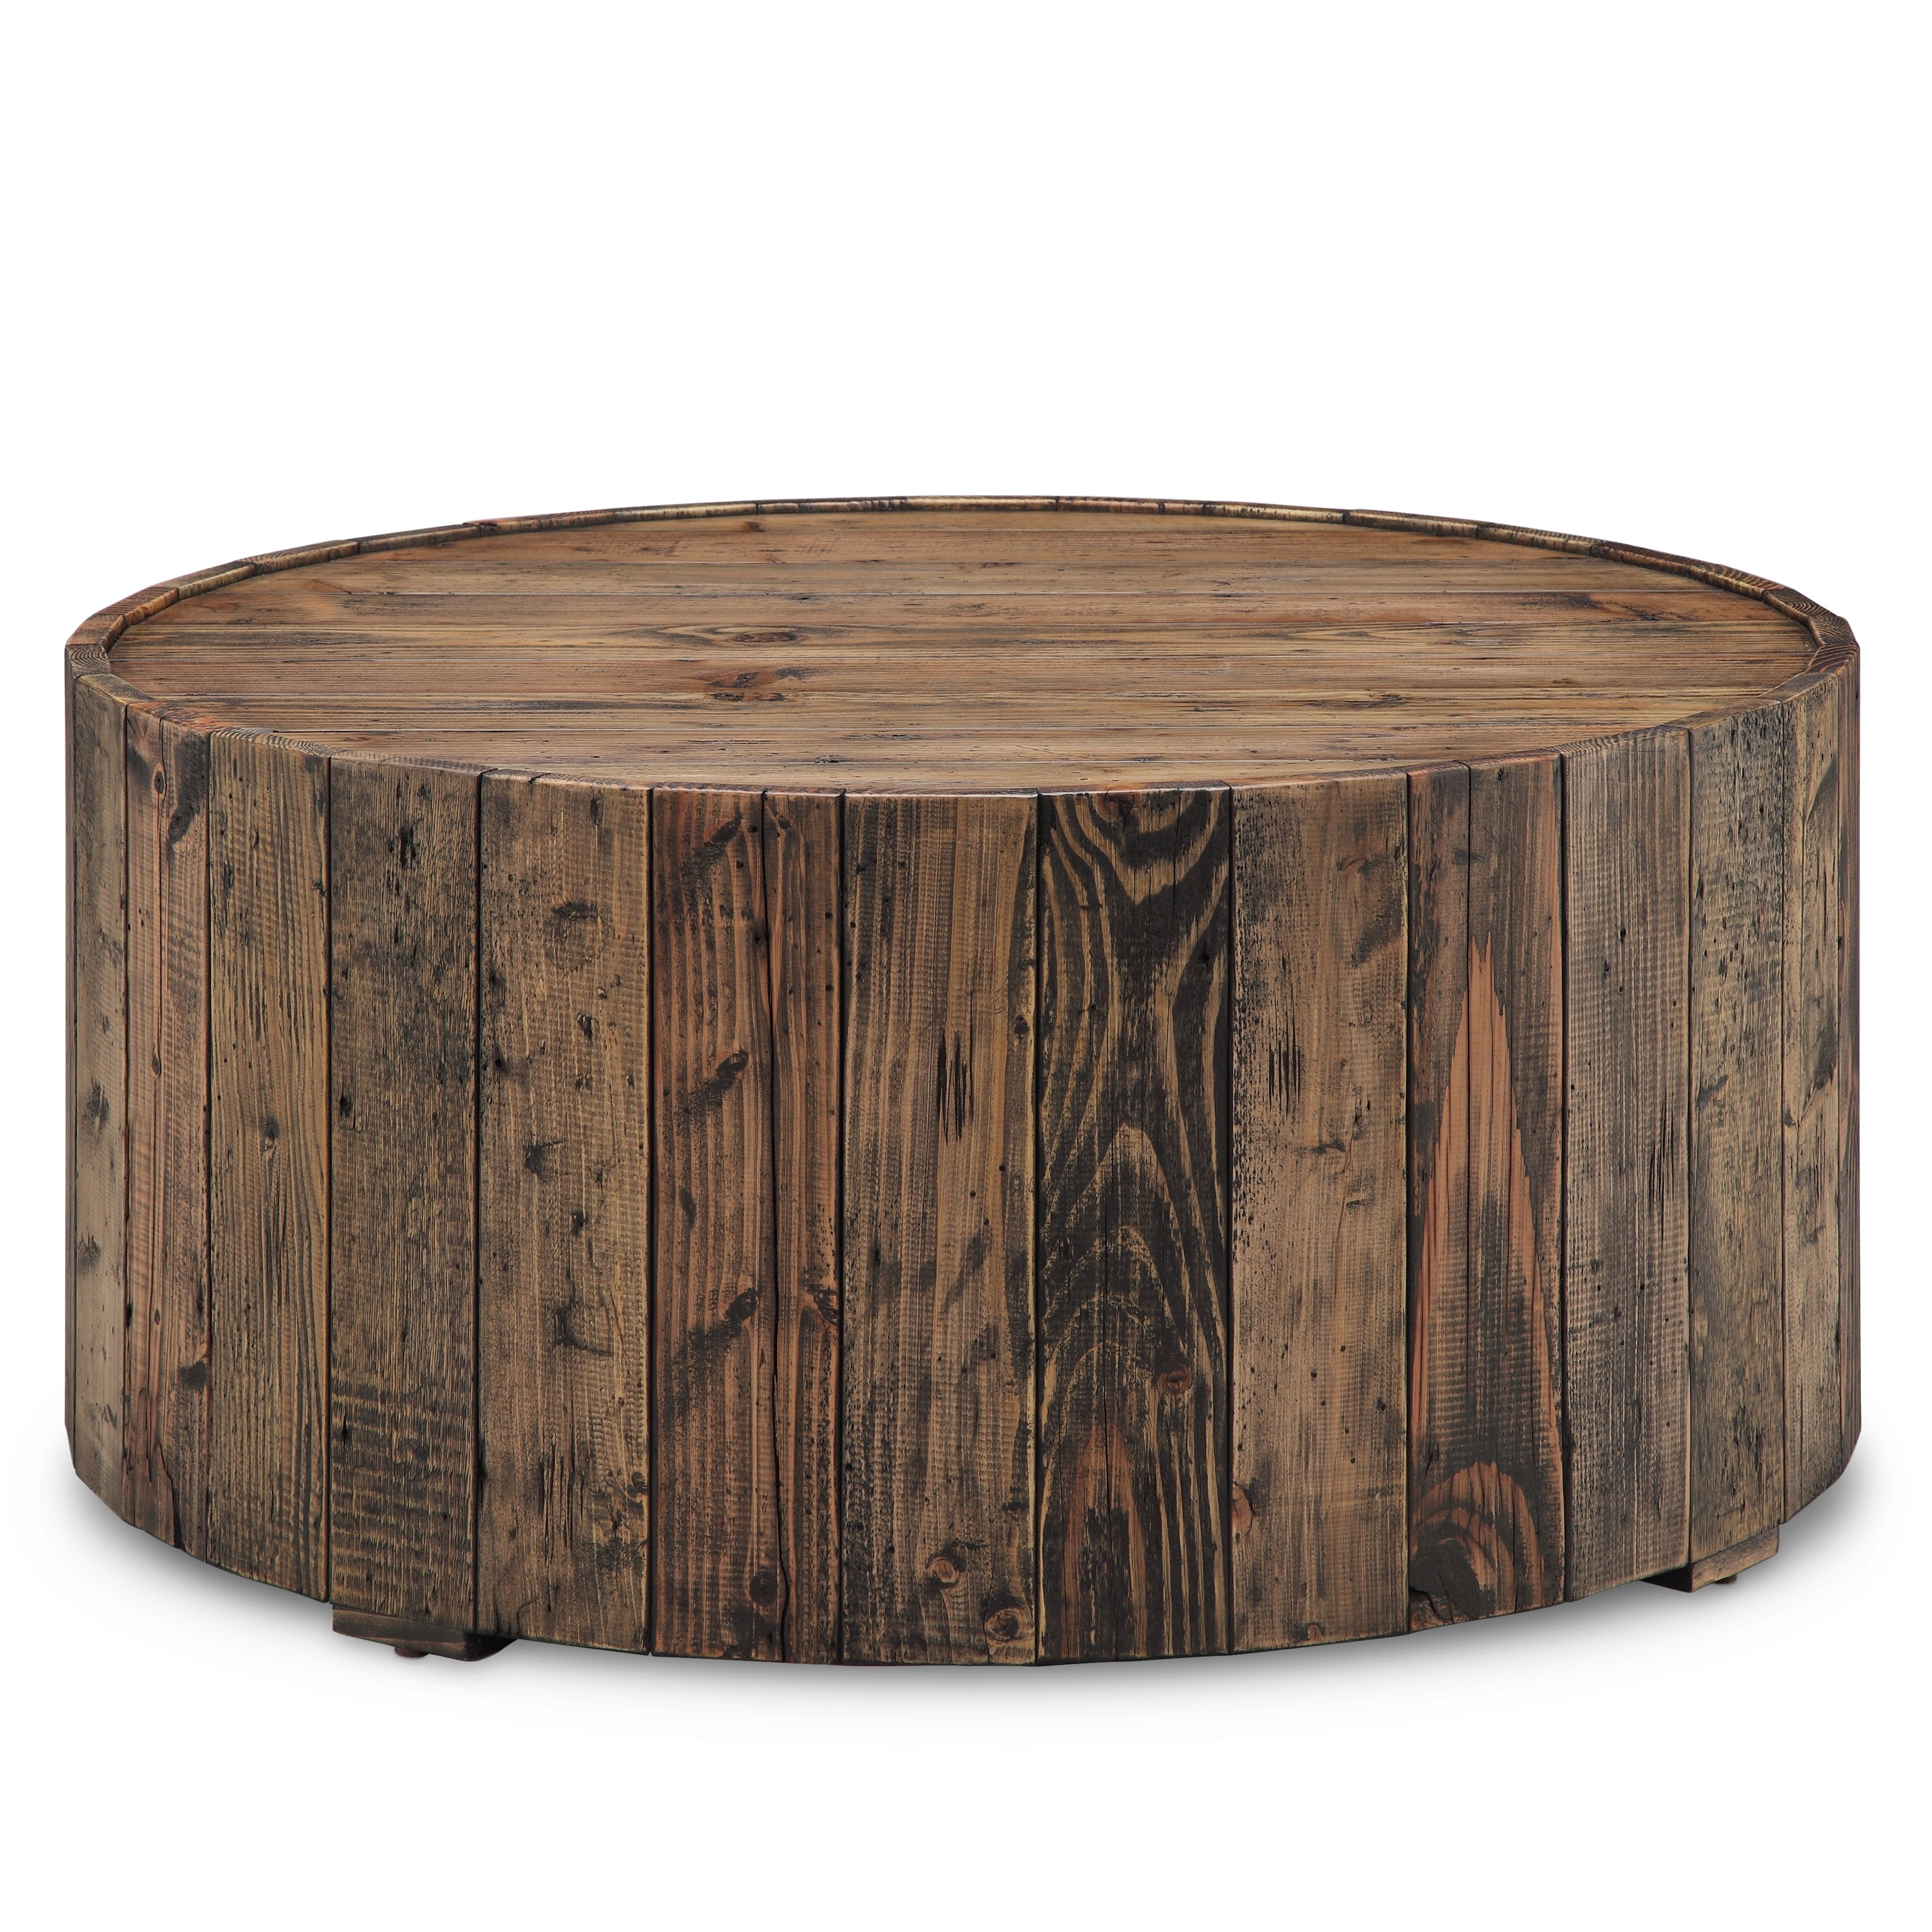 - Shop Carbon Loft Horace Rustic Reclaimed Pine Round Coffee Table